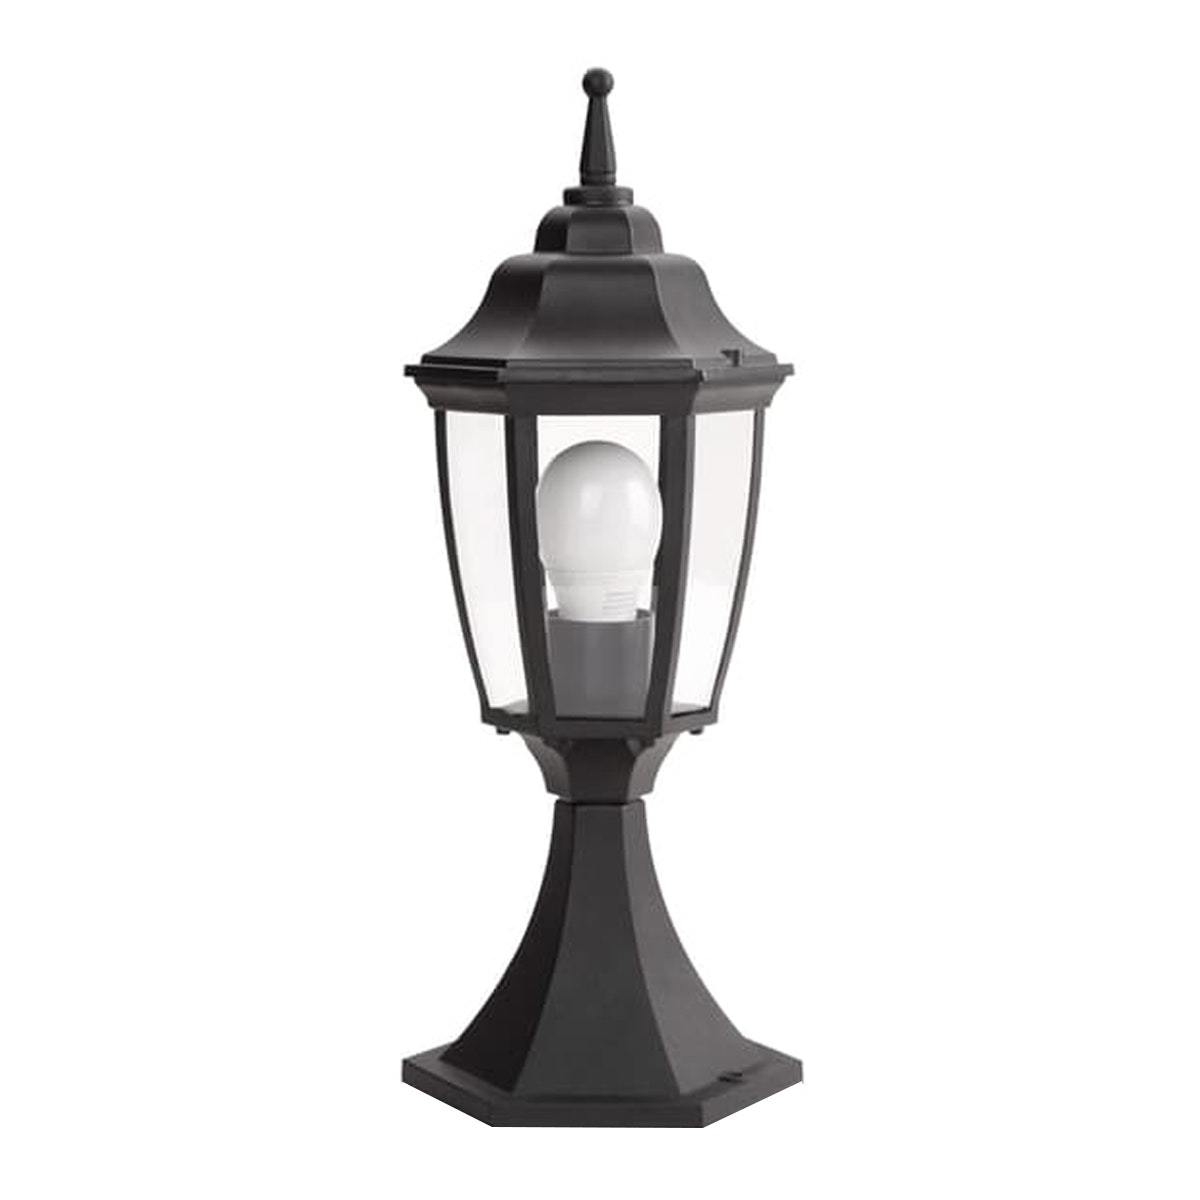 Philips Gate Light Marcedo Pedestal Black 16117